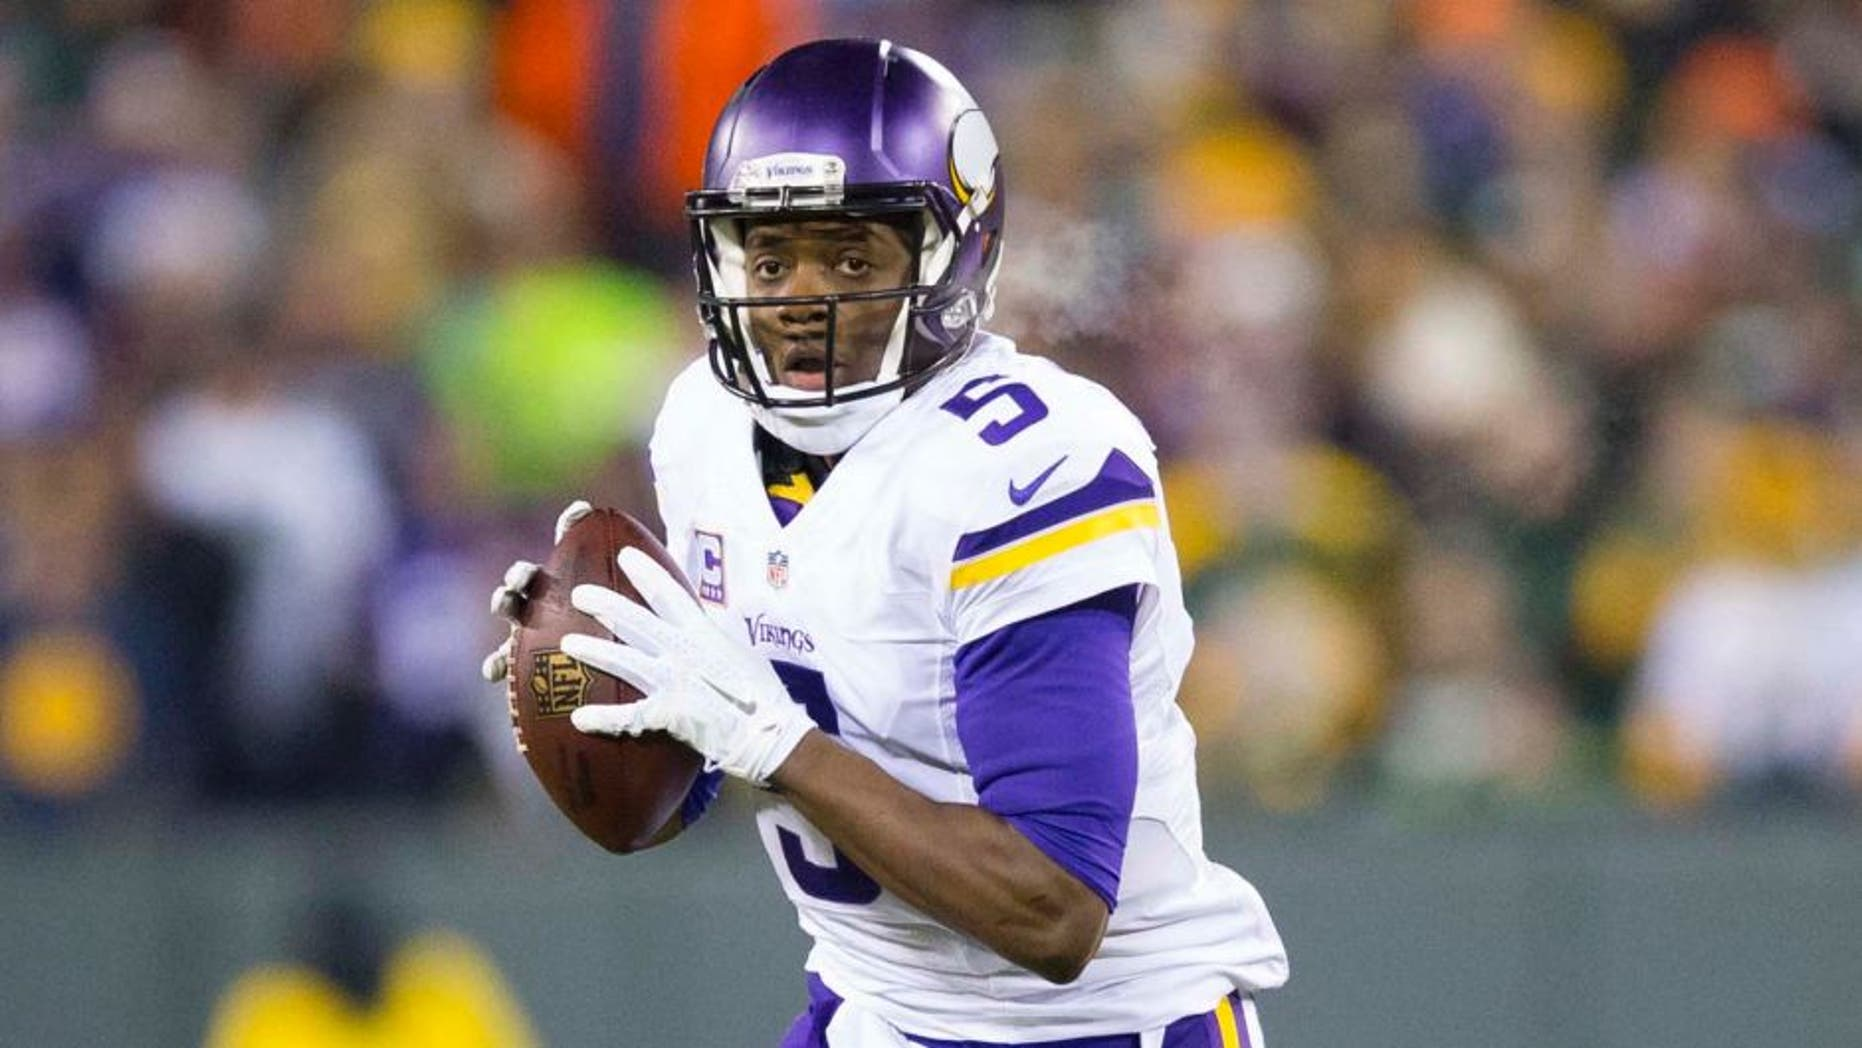 Minnesota Vikings quarterback Teddy Bridgewater looks to pass during the first quarter against the Green Bay Packers at Lambeau Field in Green Bay, Wis., on Sunday, Jan. 3, 2016.